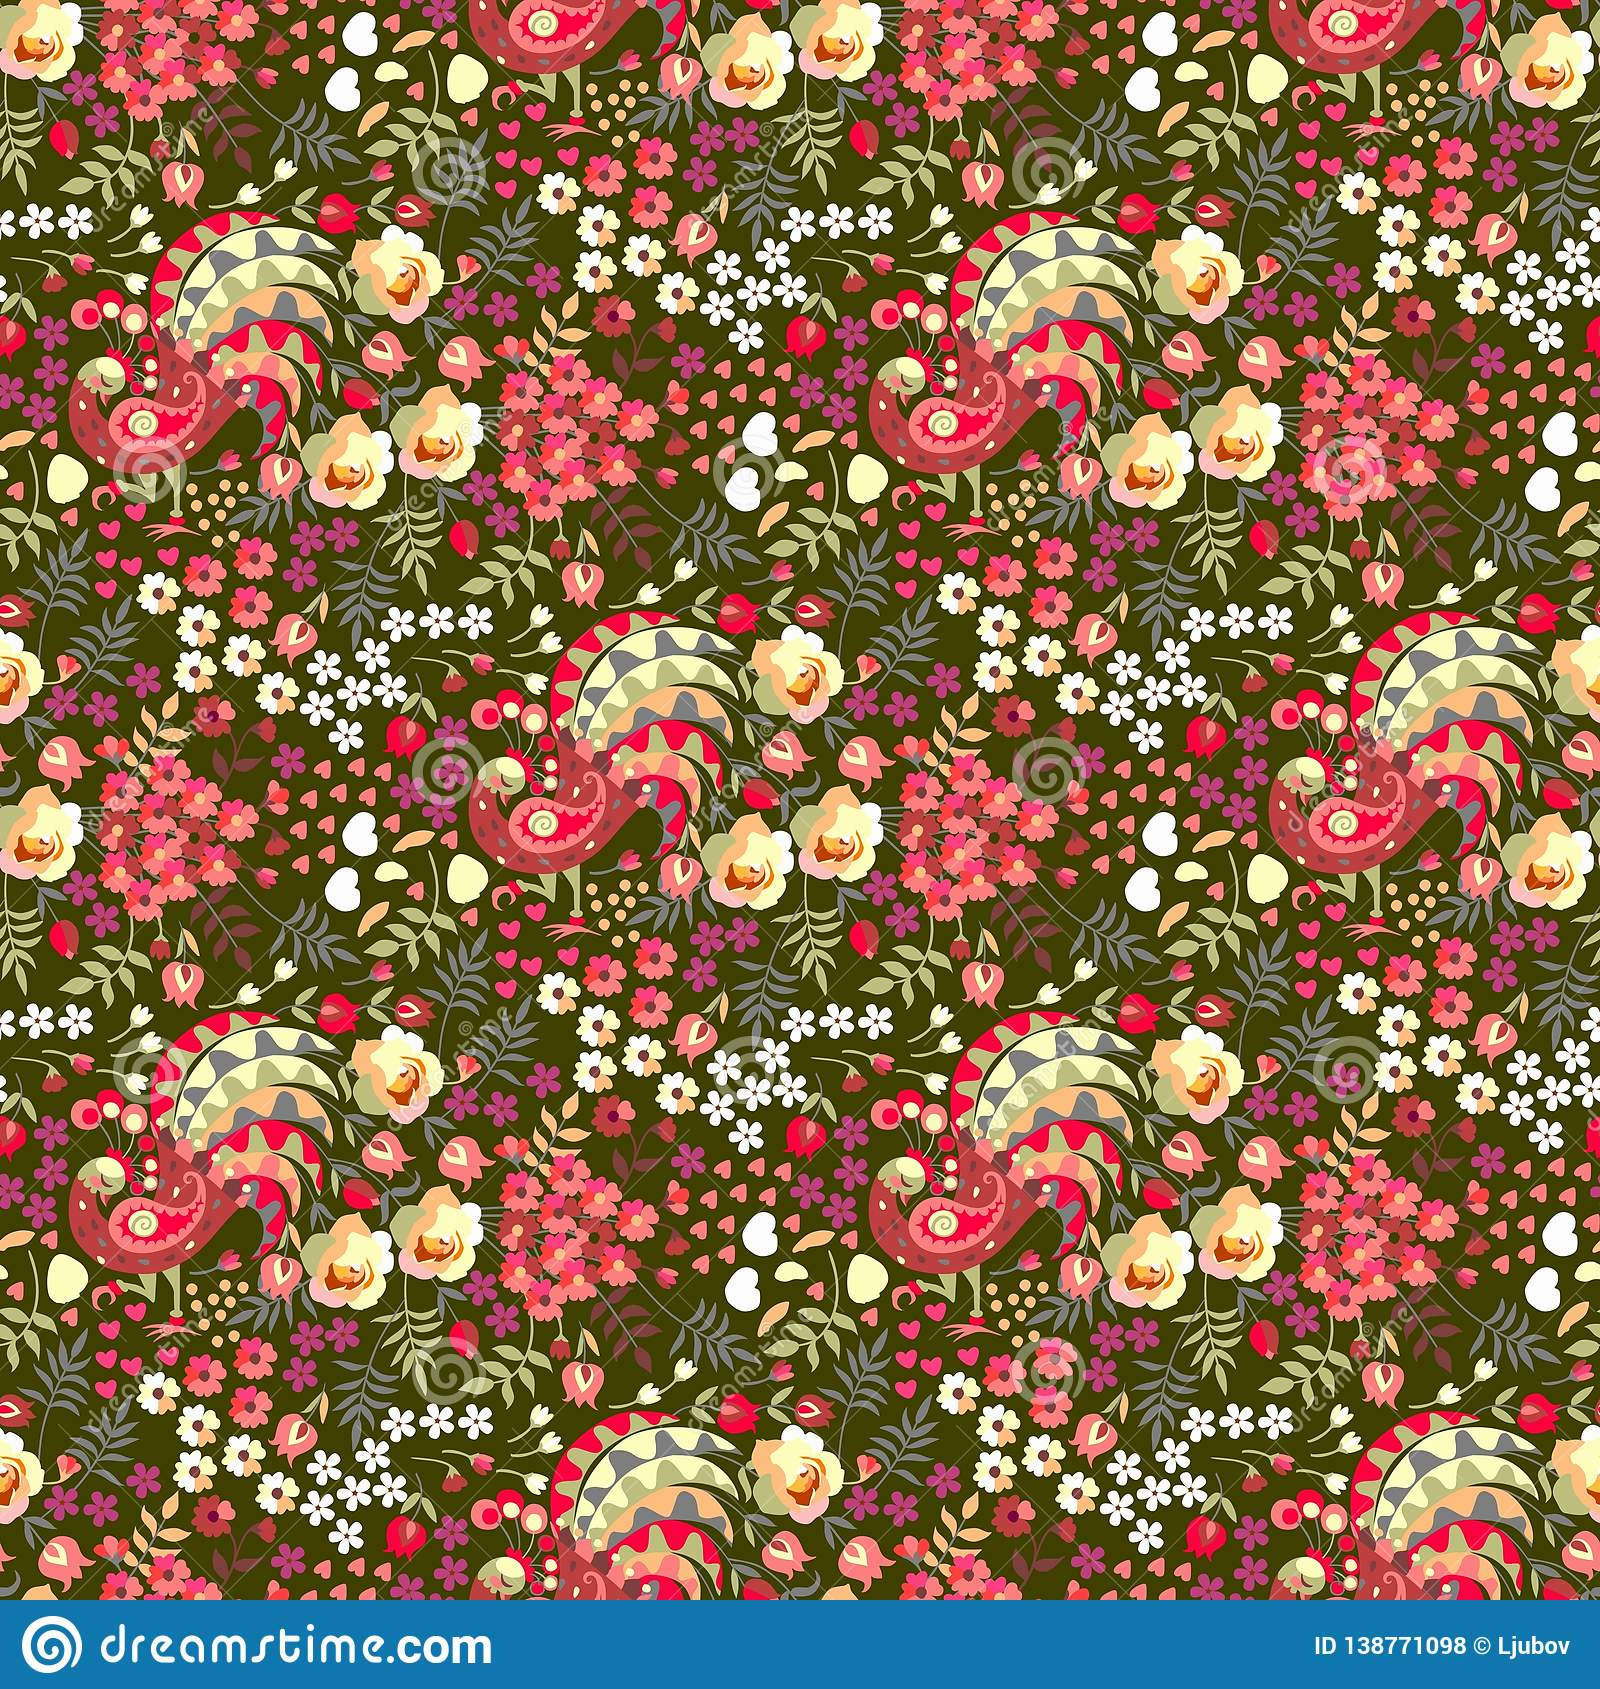 Ditsy floral seamless pattern in russian style. Cute fairy peacocks, leaves, roses, tulips flowers on dark green background